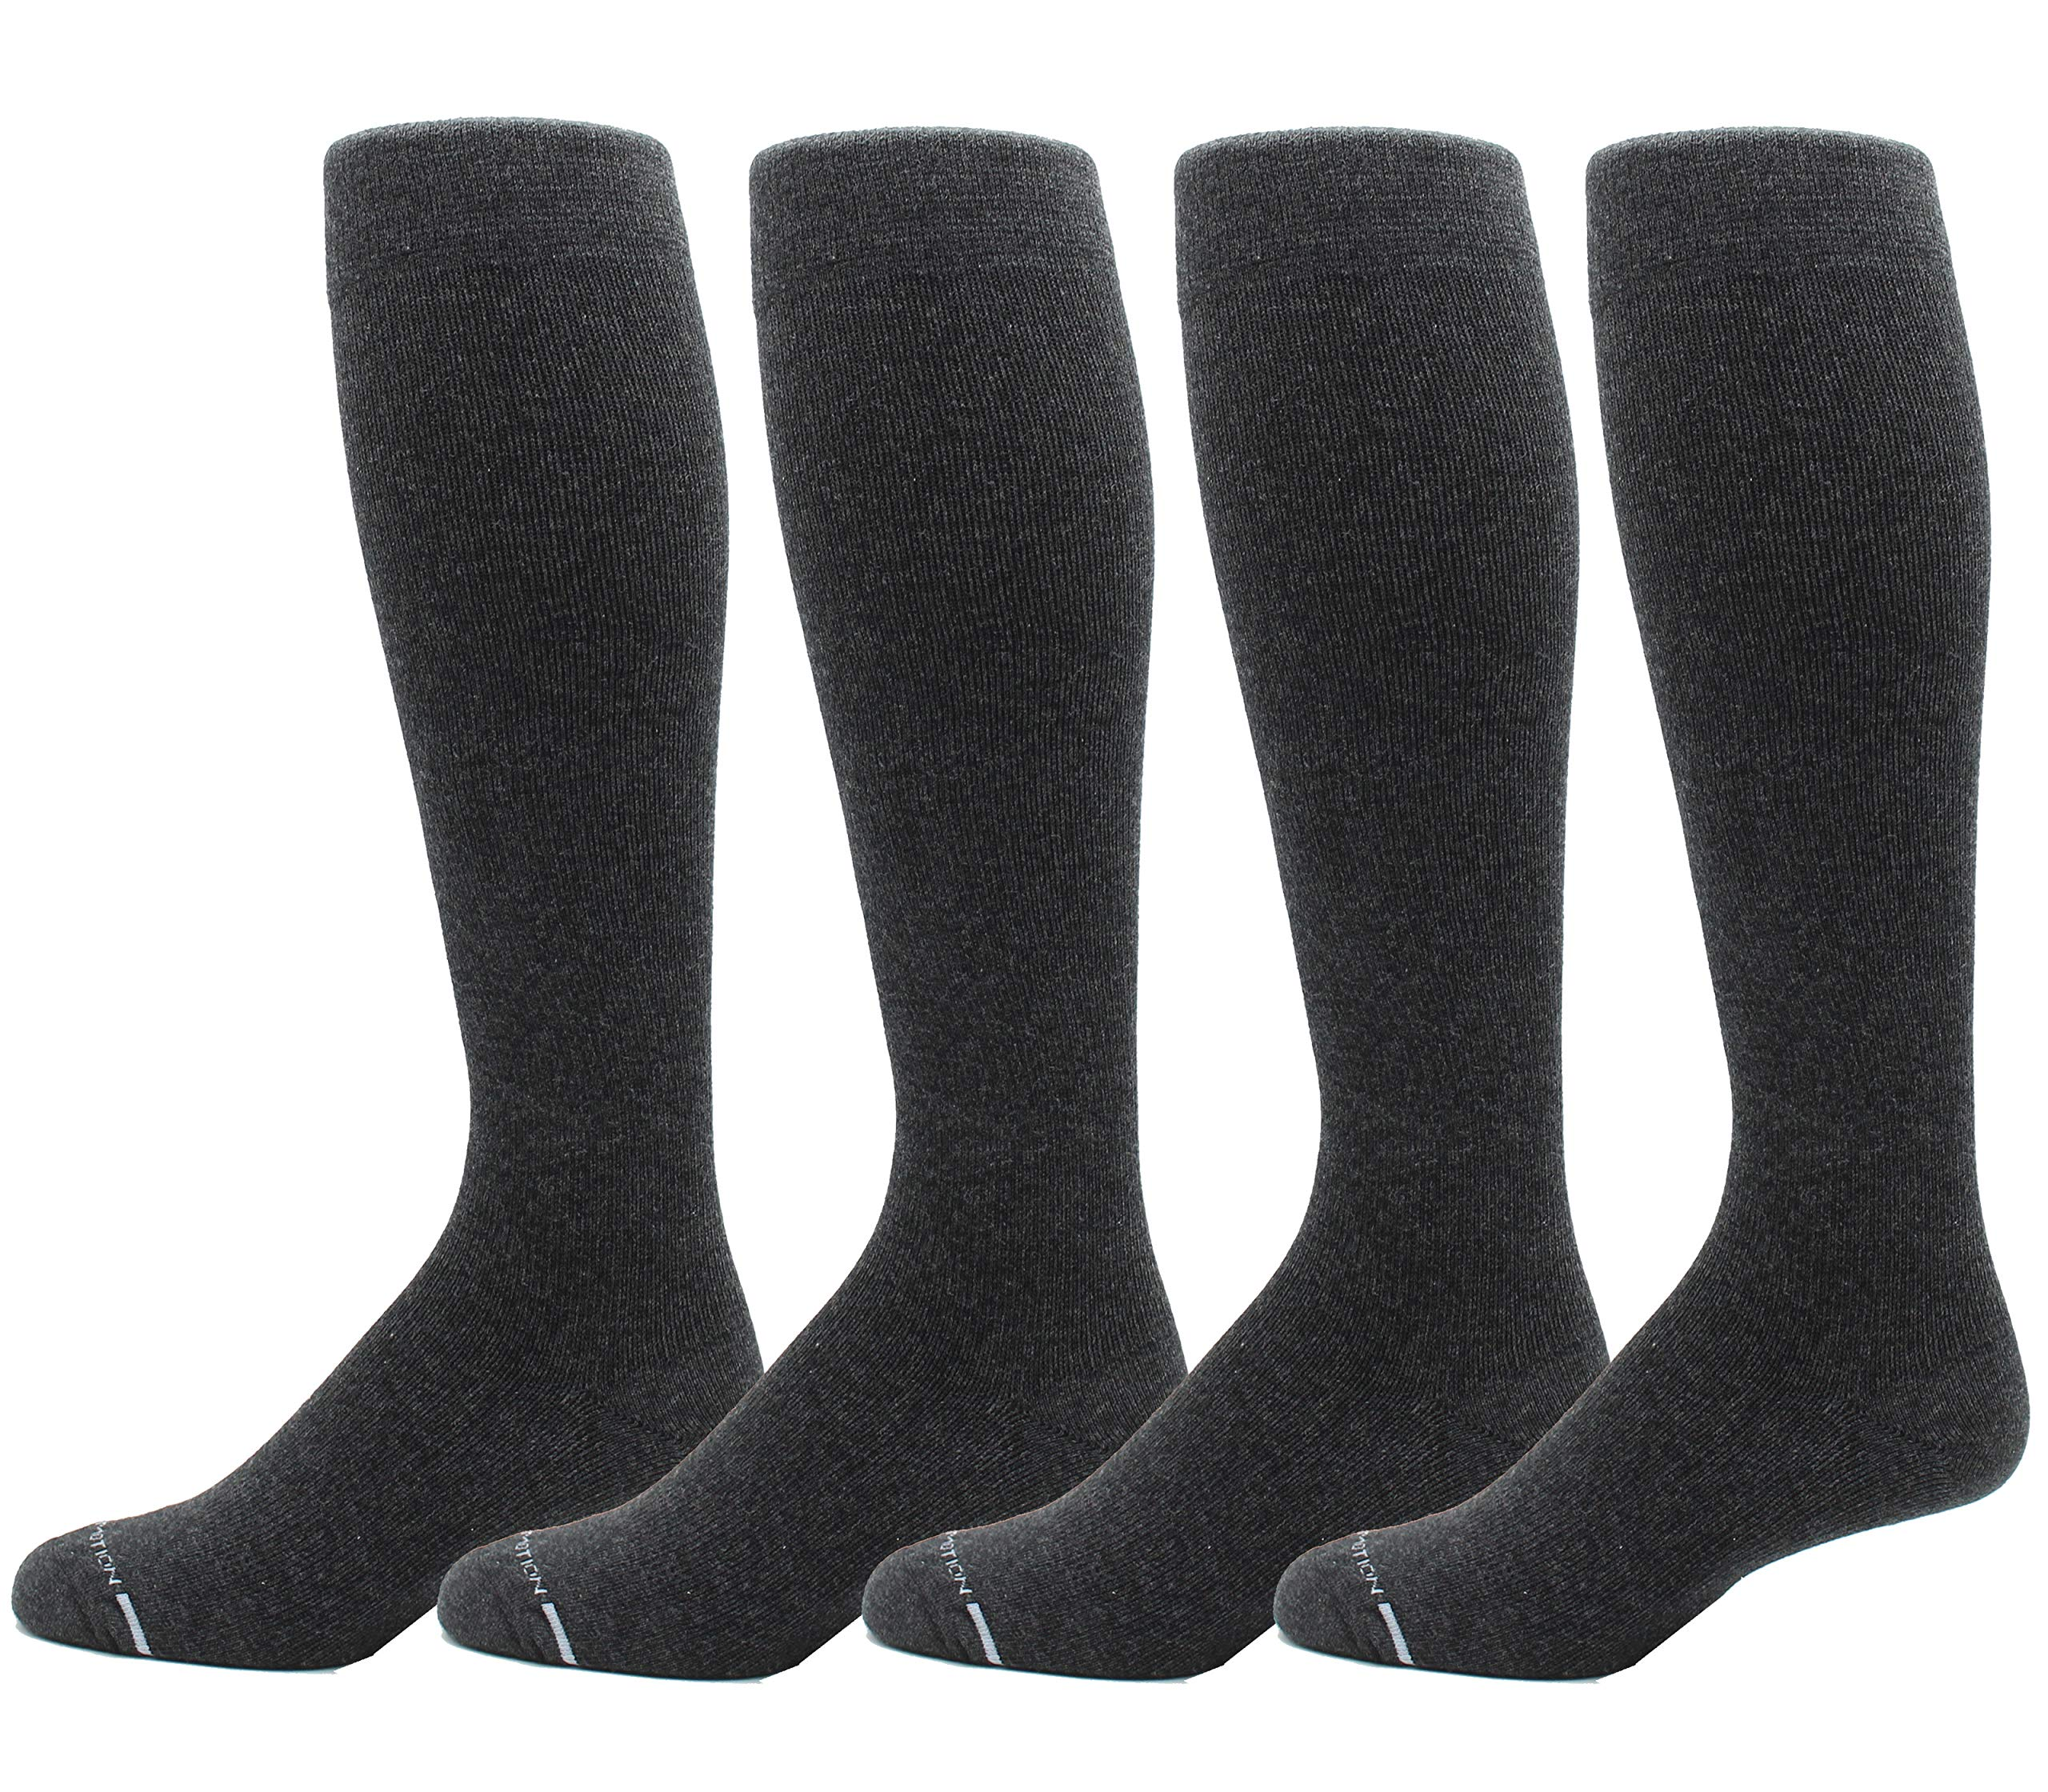 Dr. Motion Compression Socks Men & Women (8-15 mmHg) BEST Graduated Athletic Fit Running, Nurses, Travel & Maternity-4 Pairs